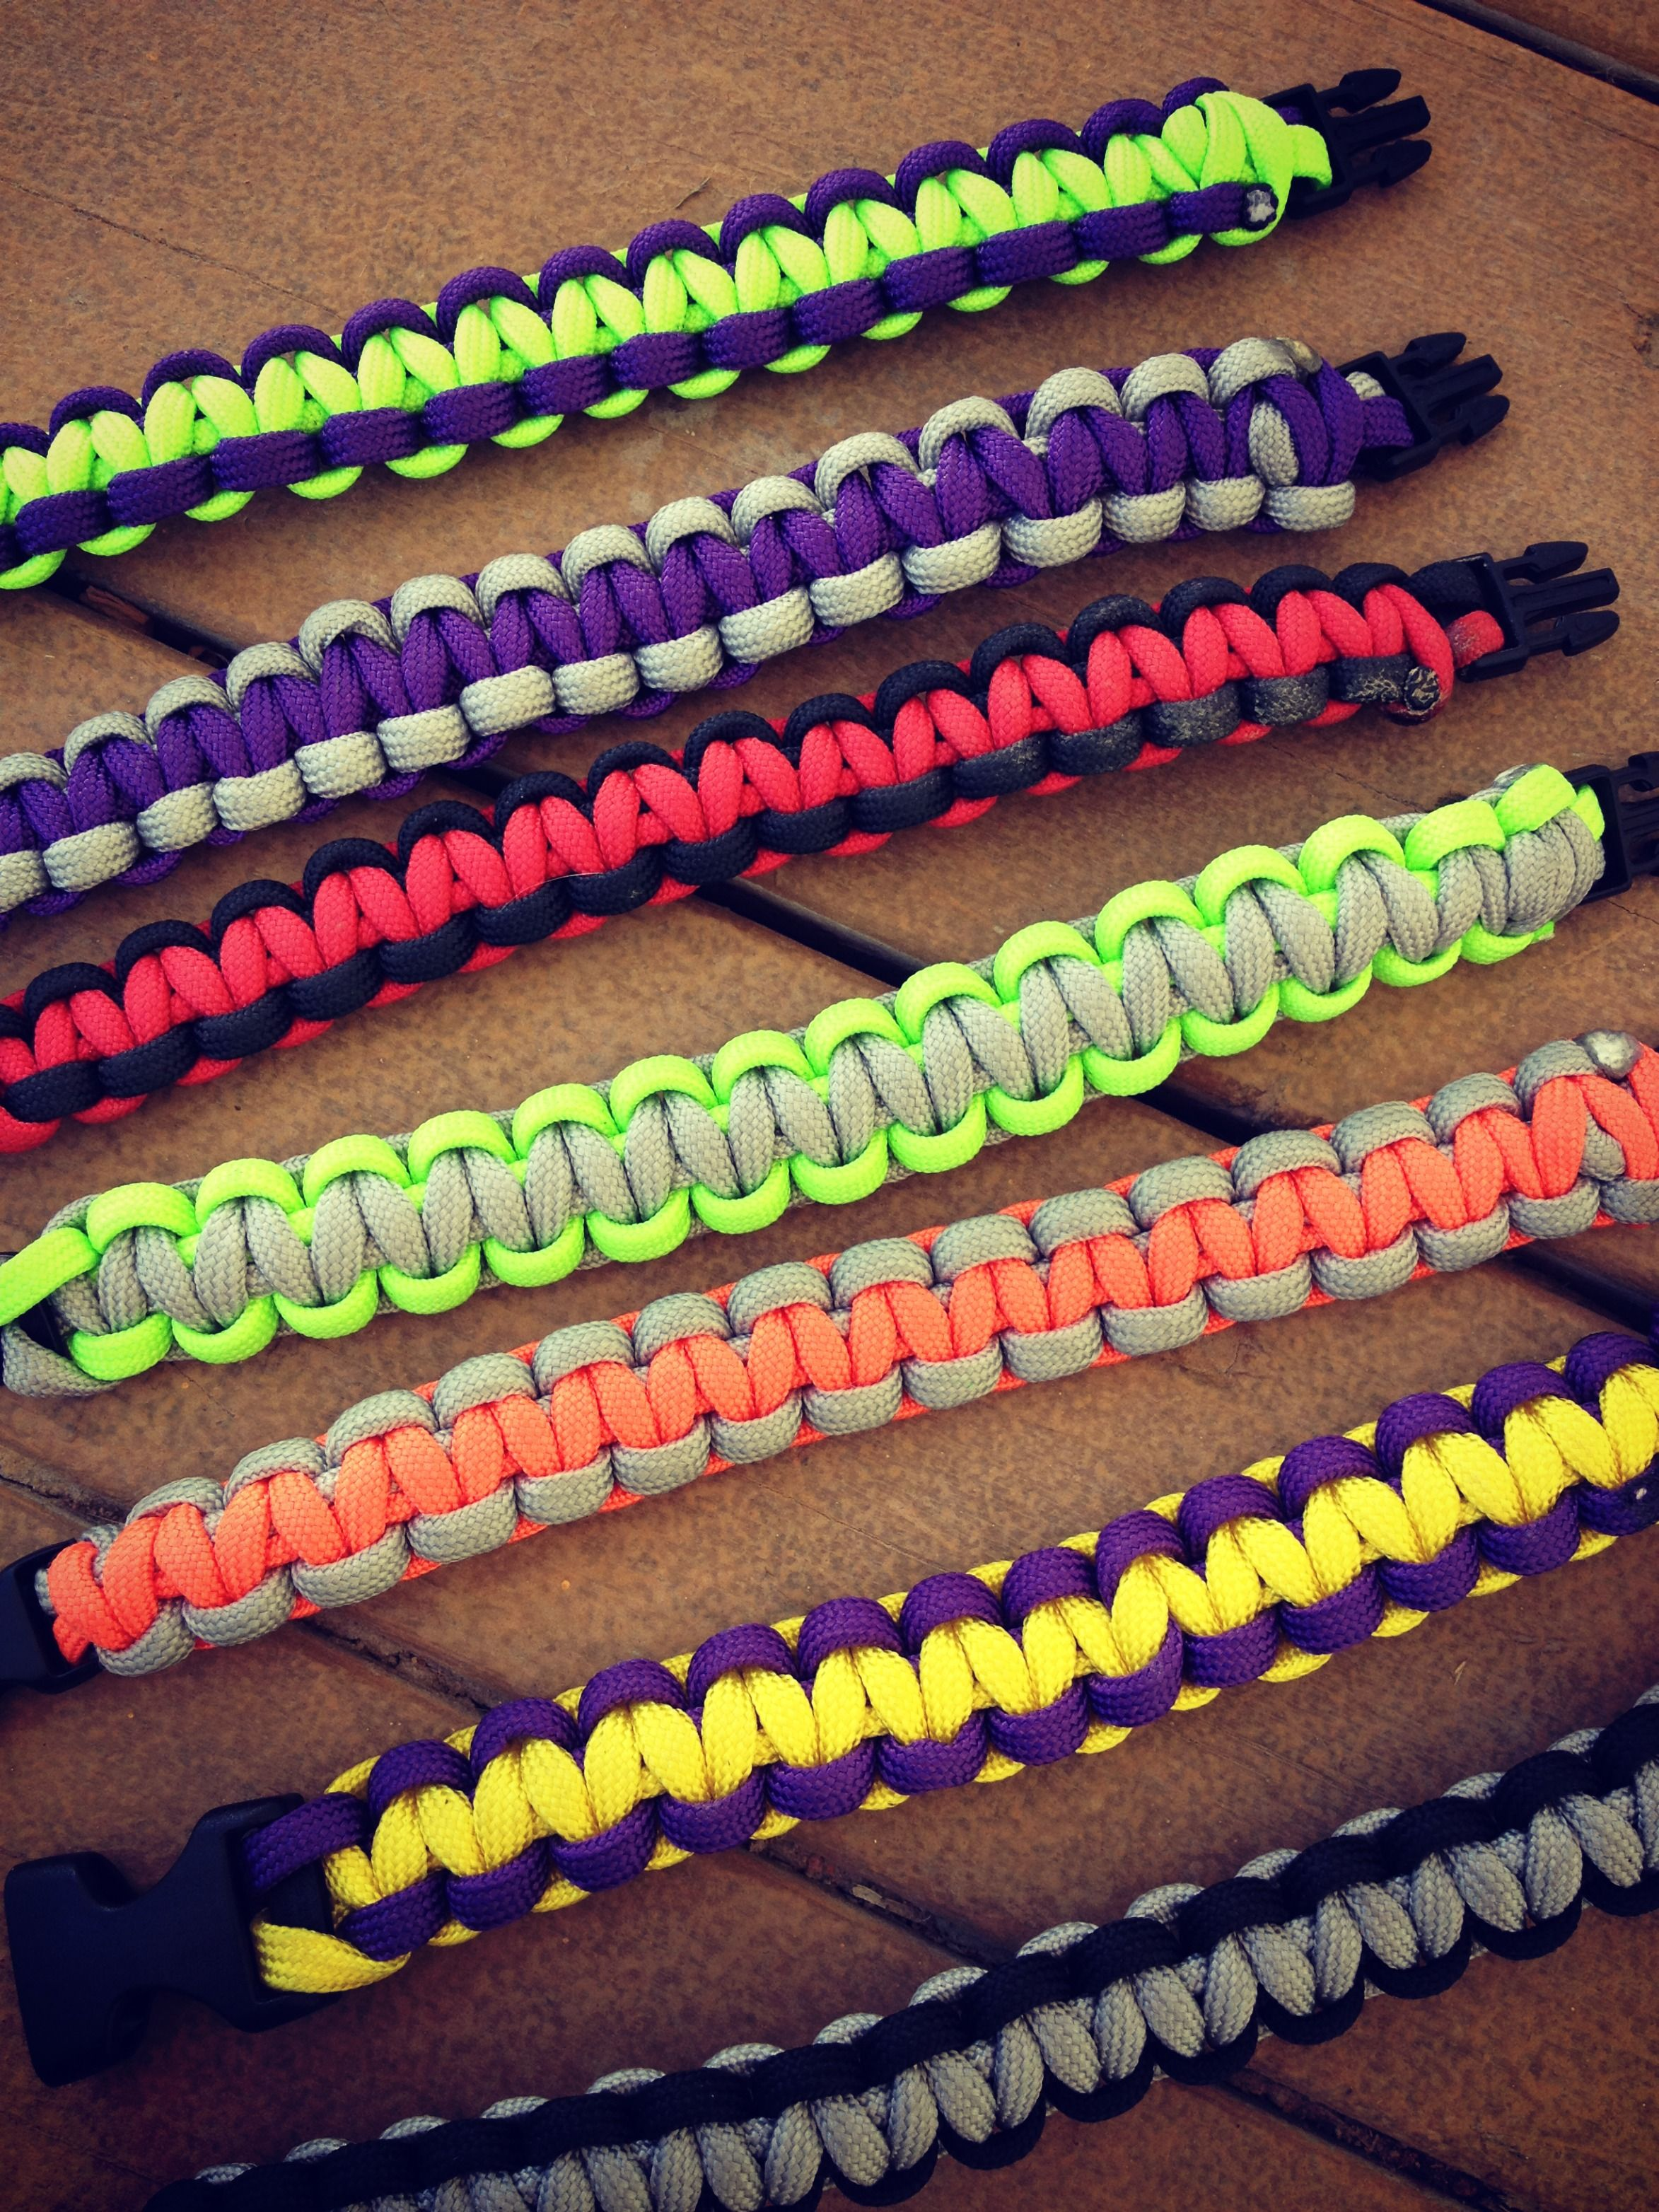 how to make paracord bracelets | Paracord bracelets, Paracord and ...